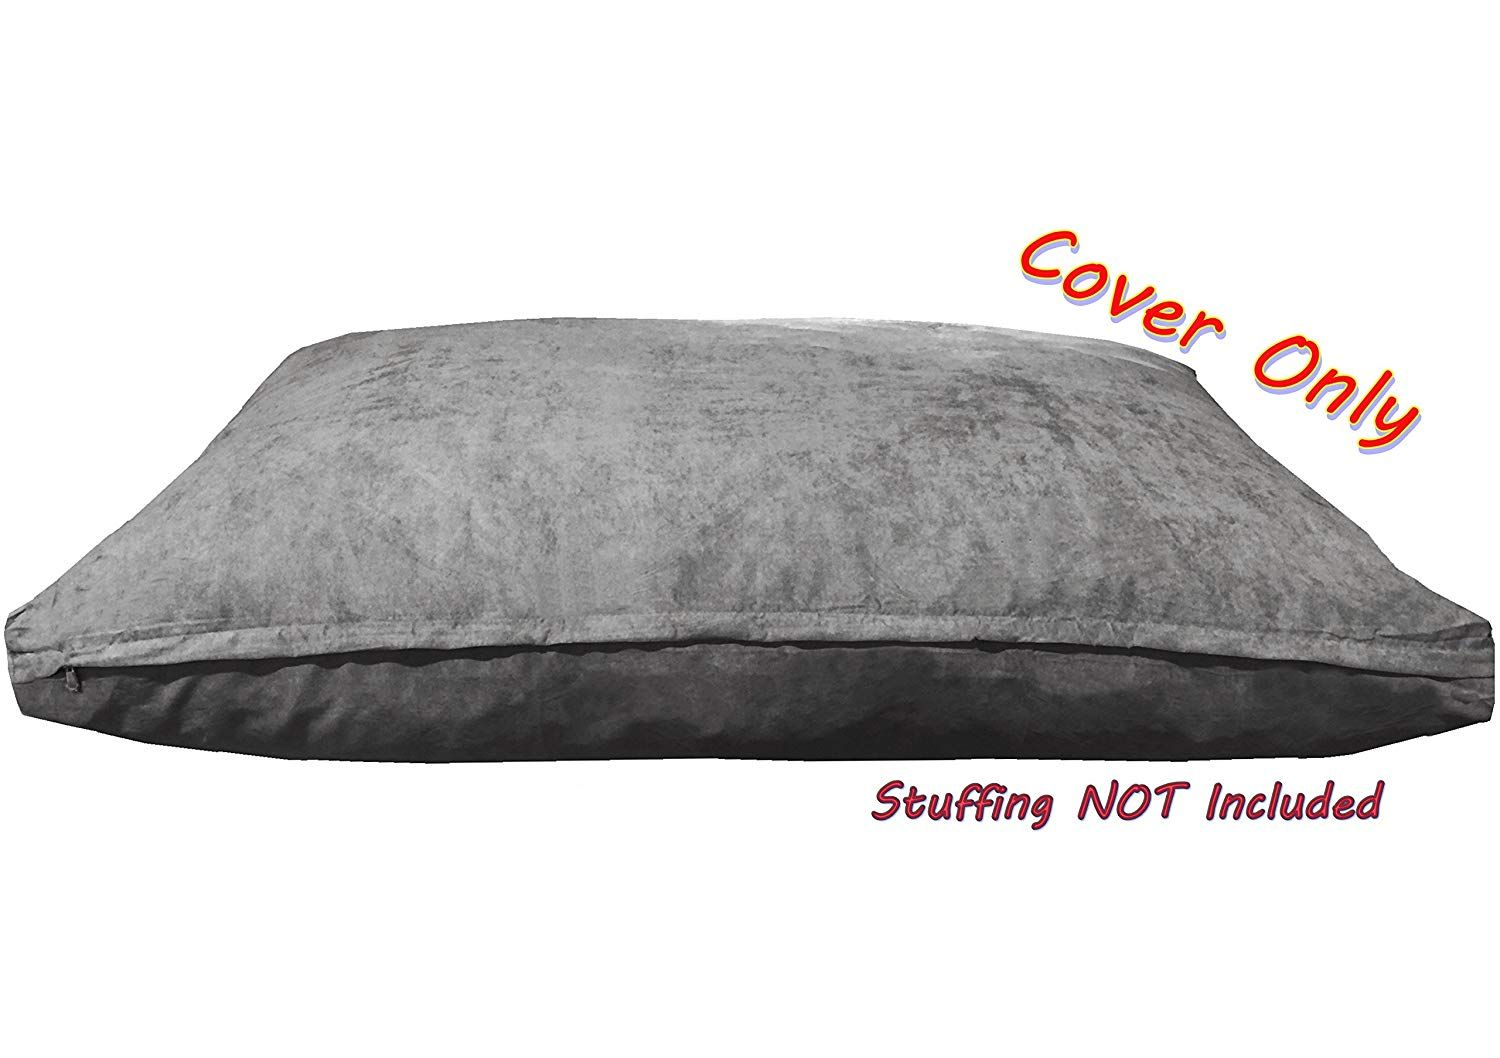 Dogbed4less Suede Duvet Pet Bed Cover For Small Medium To Large Jumbo Dog Bed In Gray Color 7 Siz Pet Bed Cover Jumbo Dog Bed Covered Dog Bed